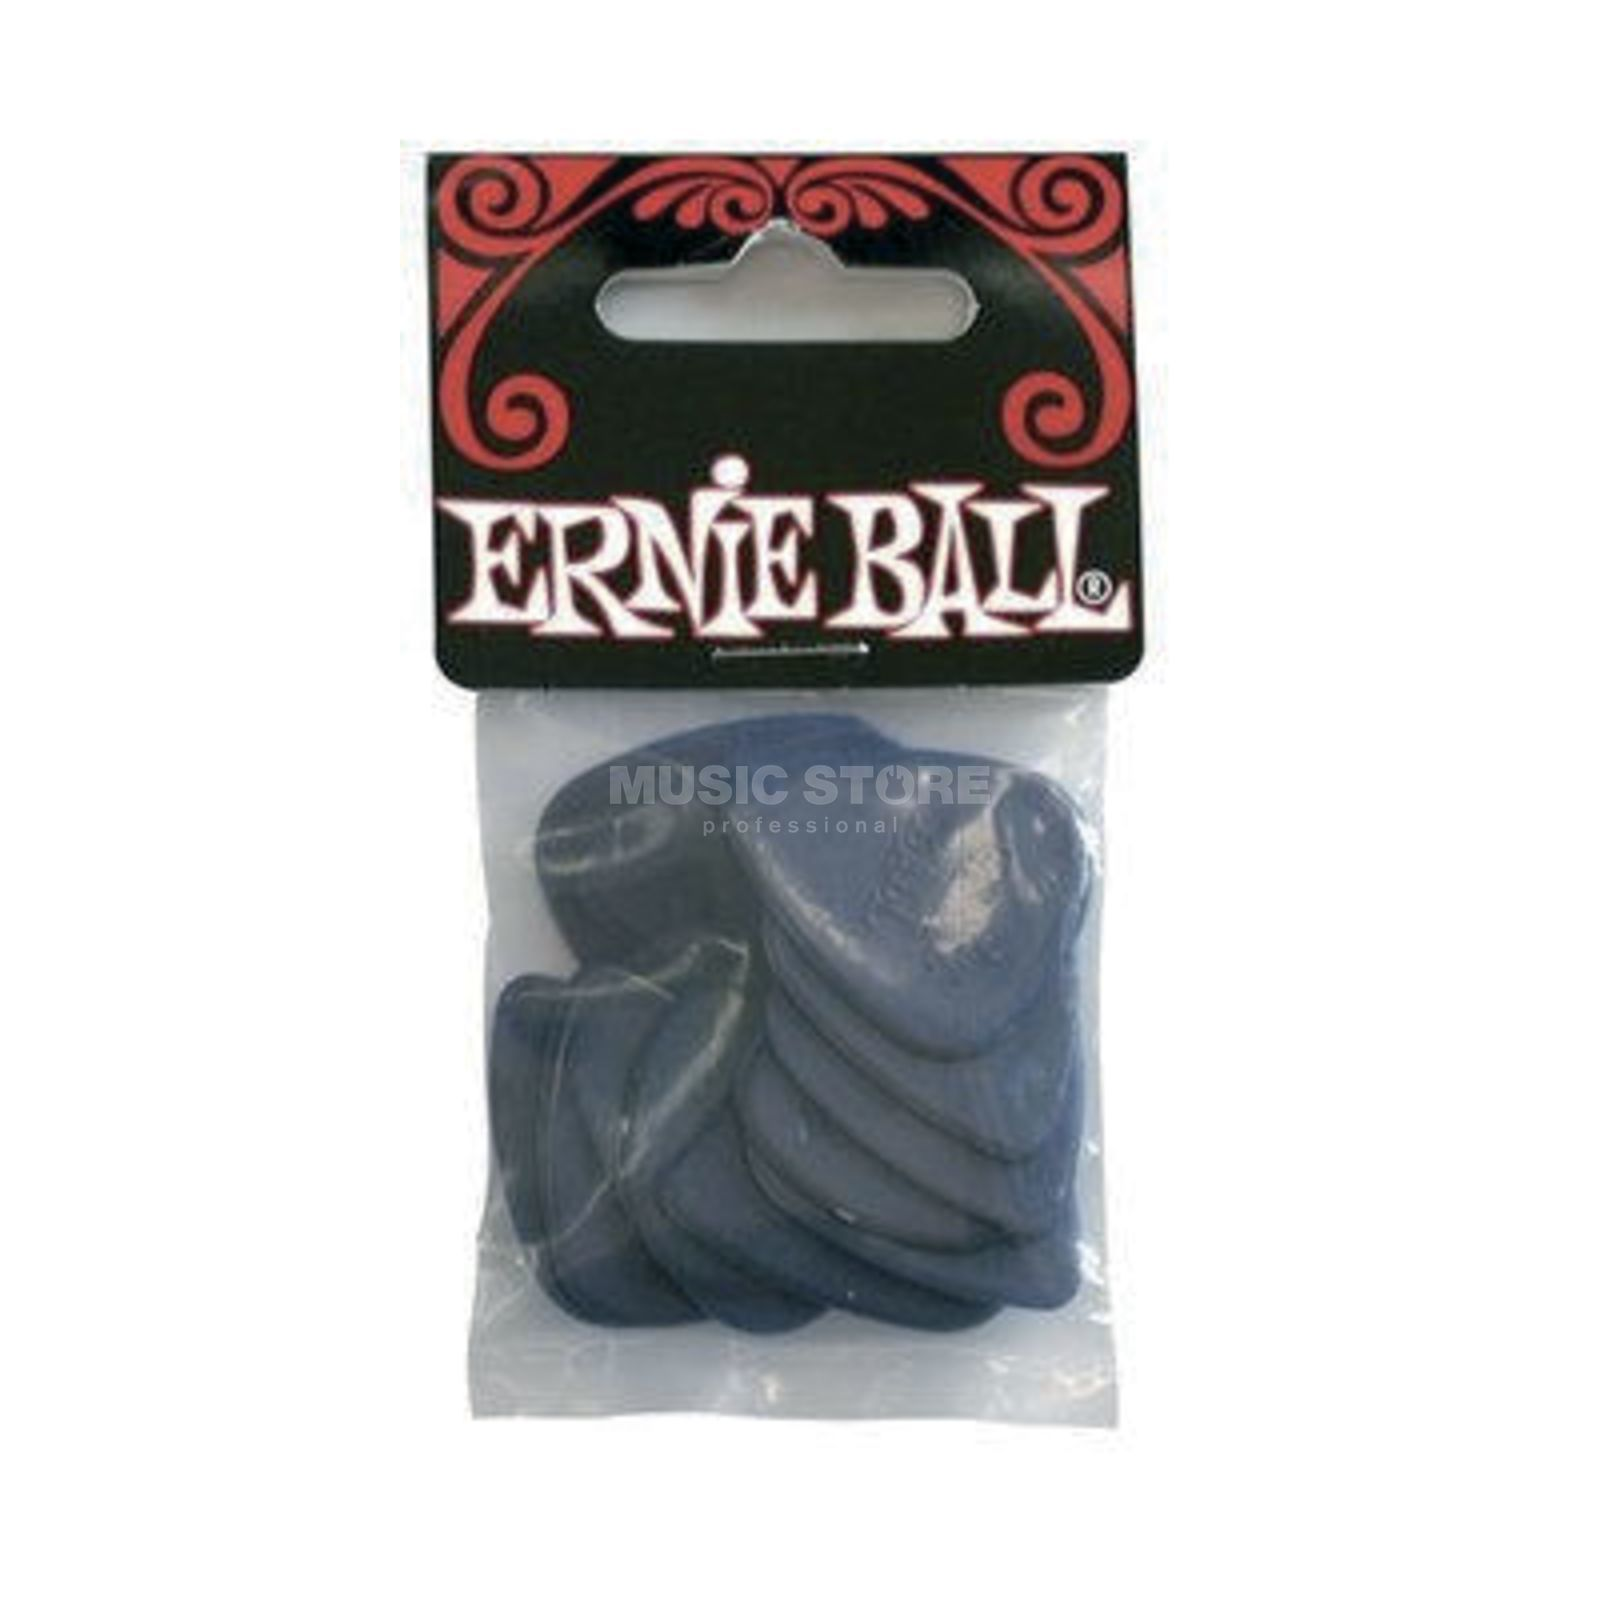 Ernie Ball EB9136 Nylon Picks 0,72 mm 12er Set Produktbild